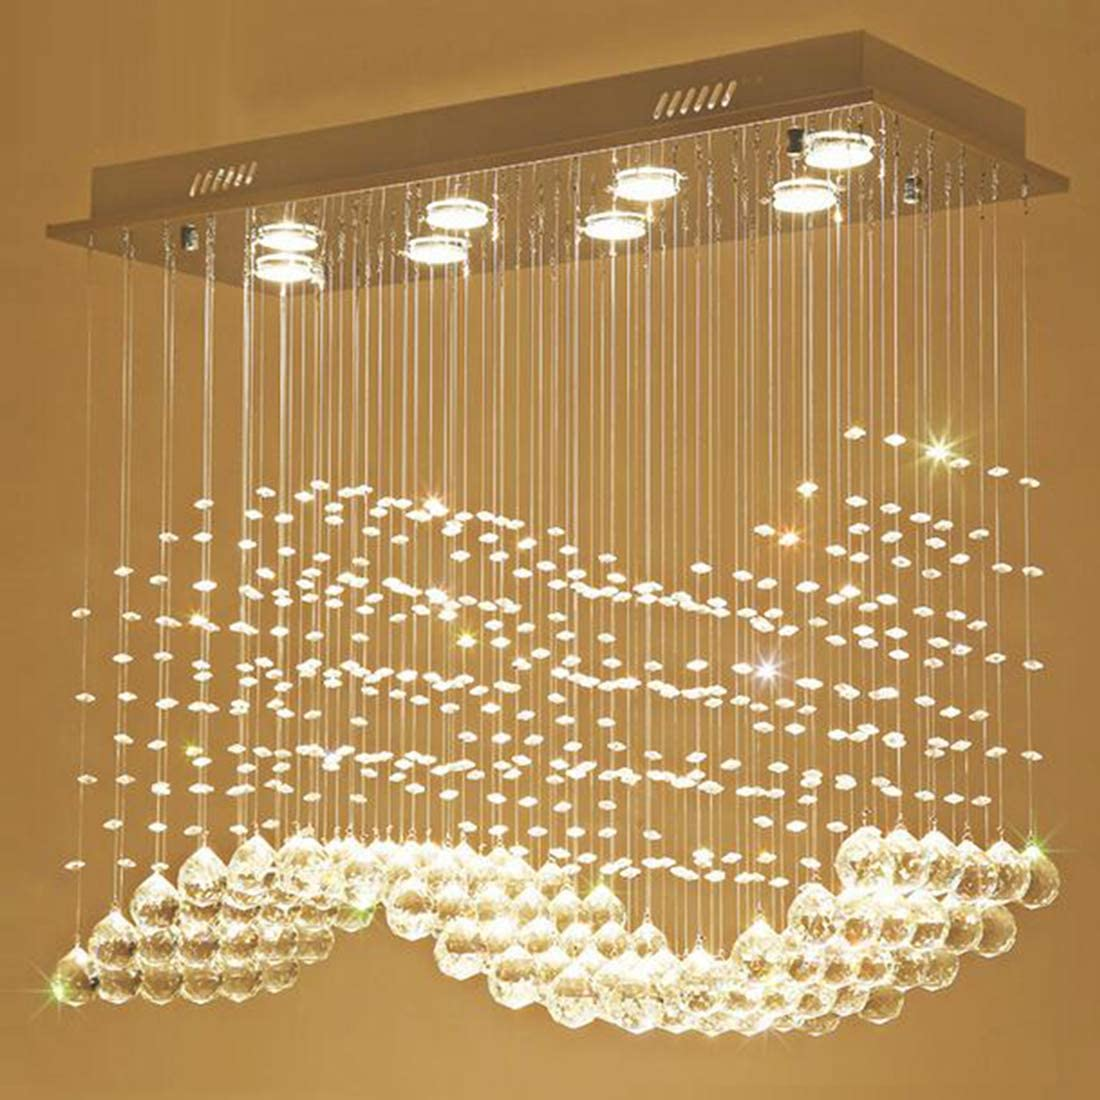 Moooni Modern Rectangular Crystal Chandelier Lighting Pendent Ceiling Light Fixture for Dining Rooms L31.5 x W11.8 x H27.6